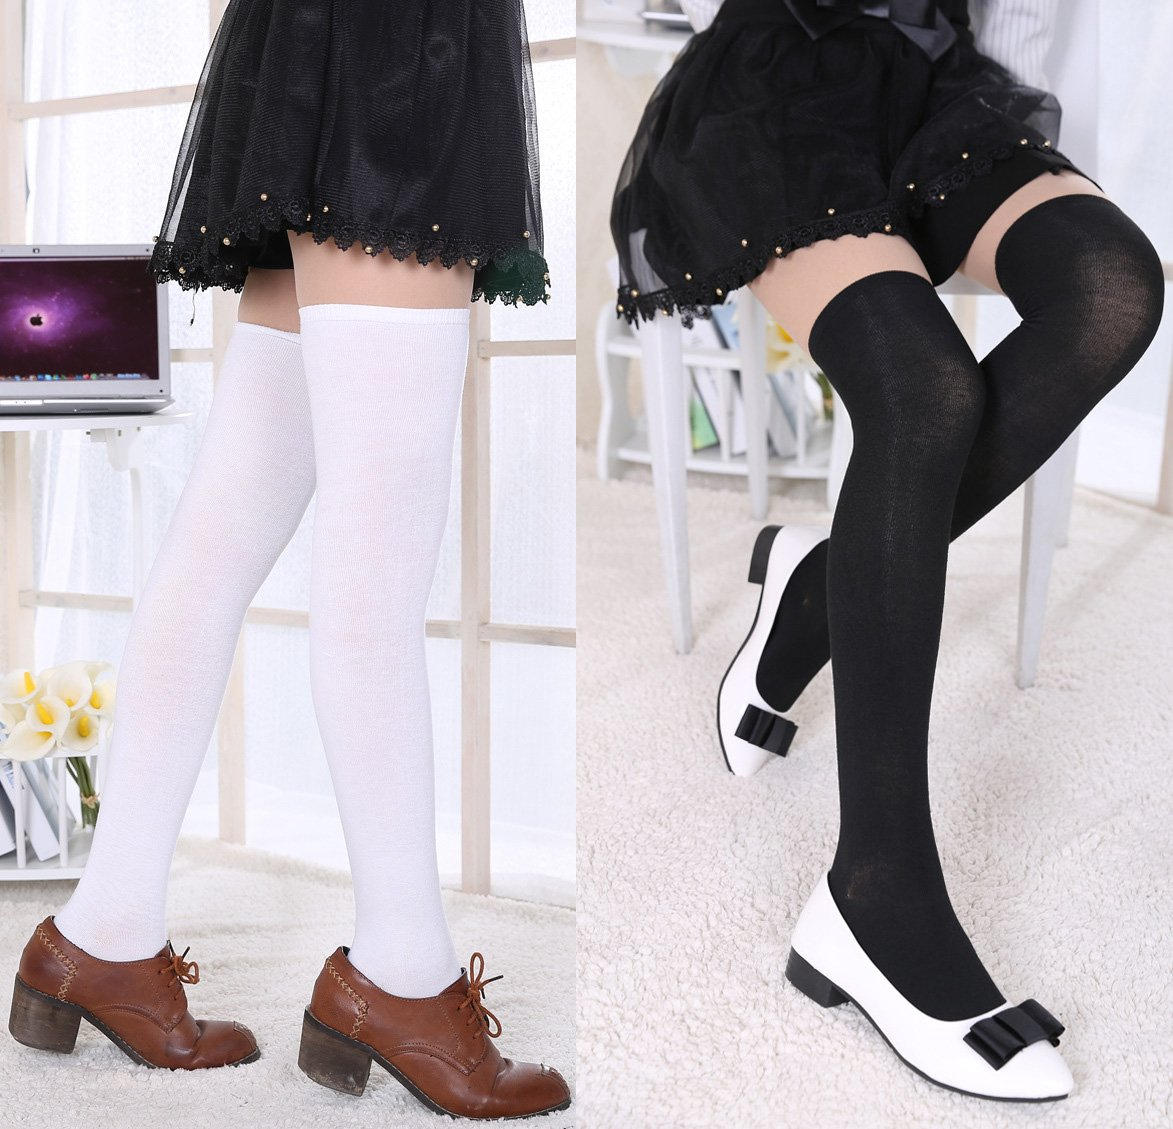 Chalier 3 Pairs Womens Long Socks Over Knee Stockings, White, Gray, Black, OS by Chalier (Image #3)